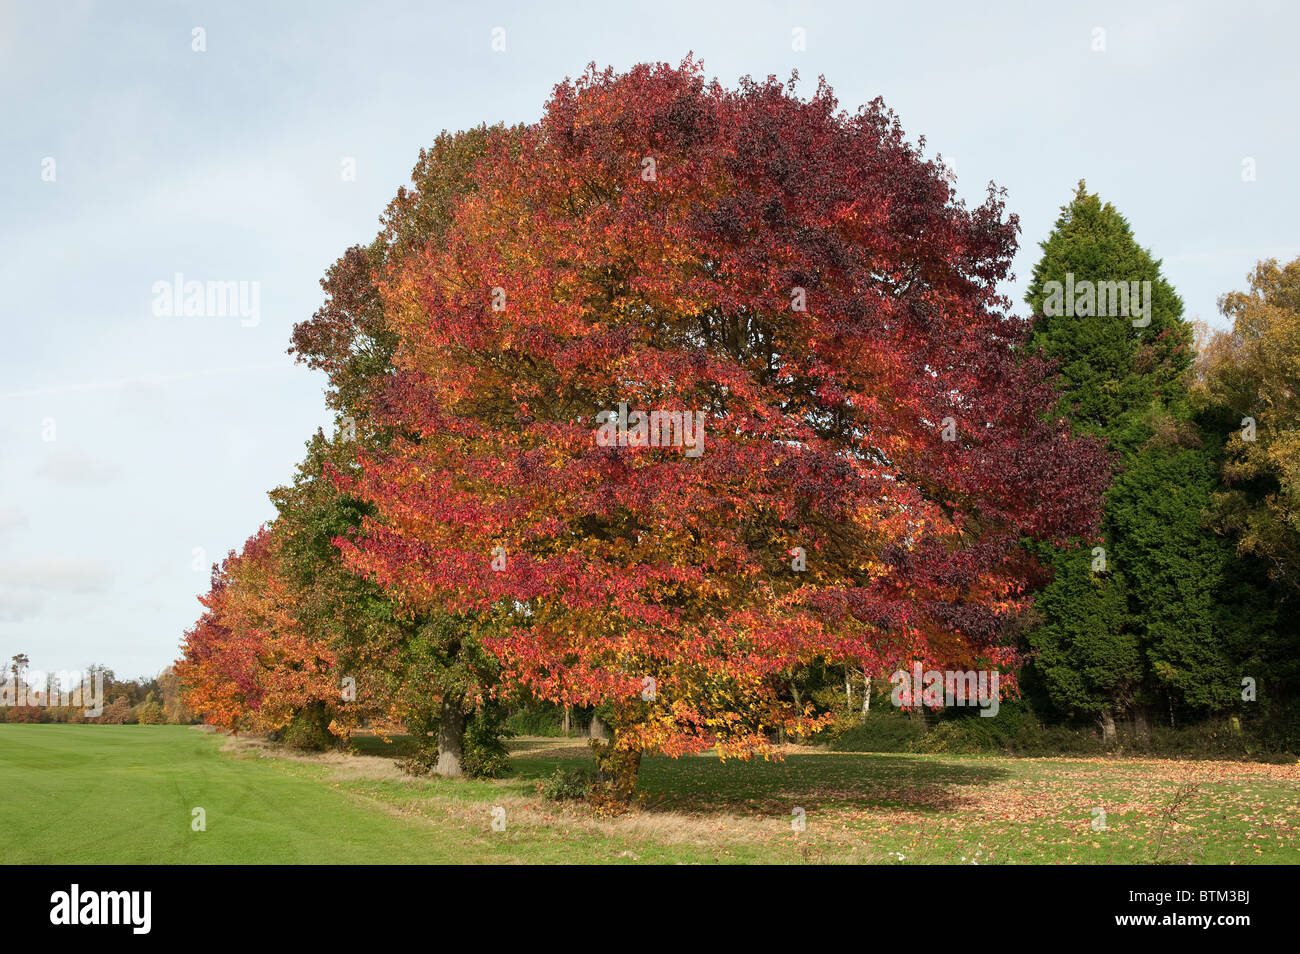 Avenue of Trees in Autumn Colours at Smith's Lawn, Savill Gardens, Windsor, Berkshire-3 - Stock Image